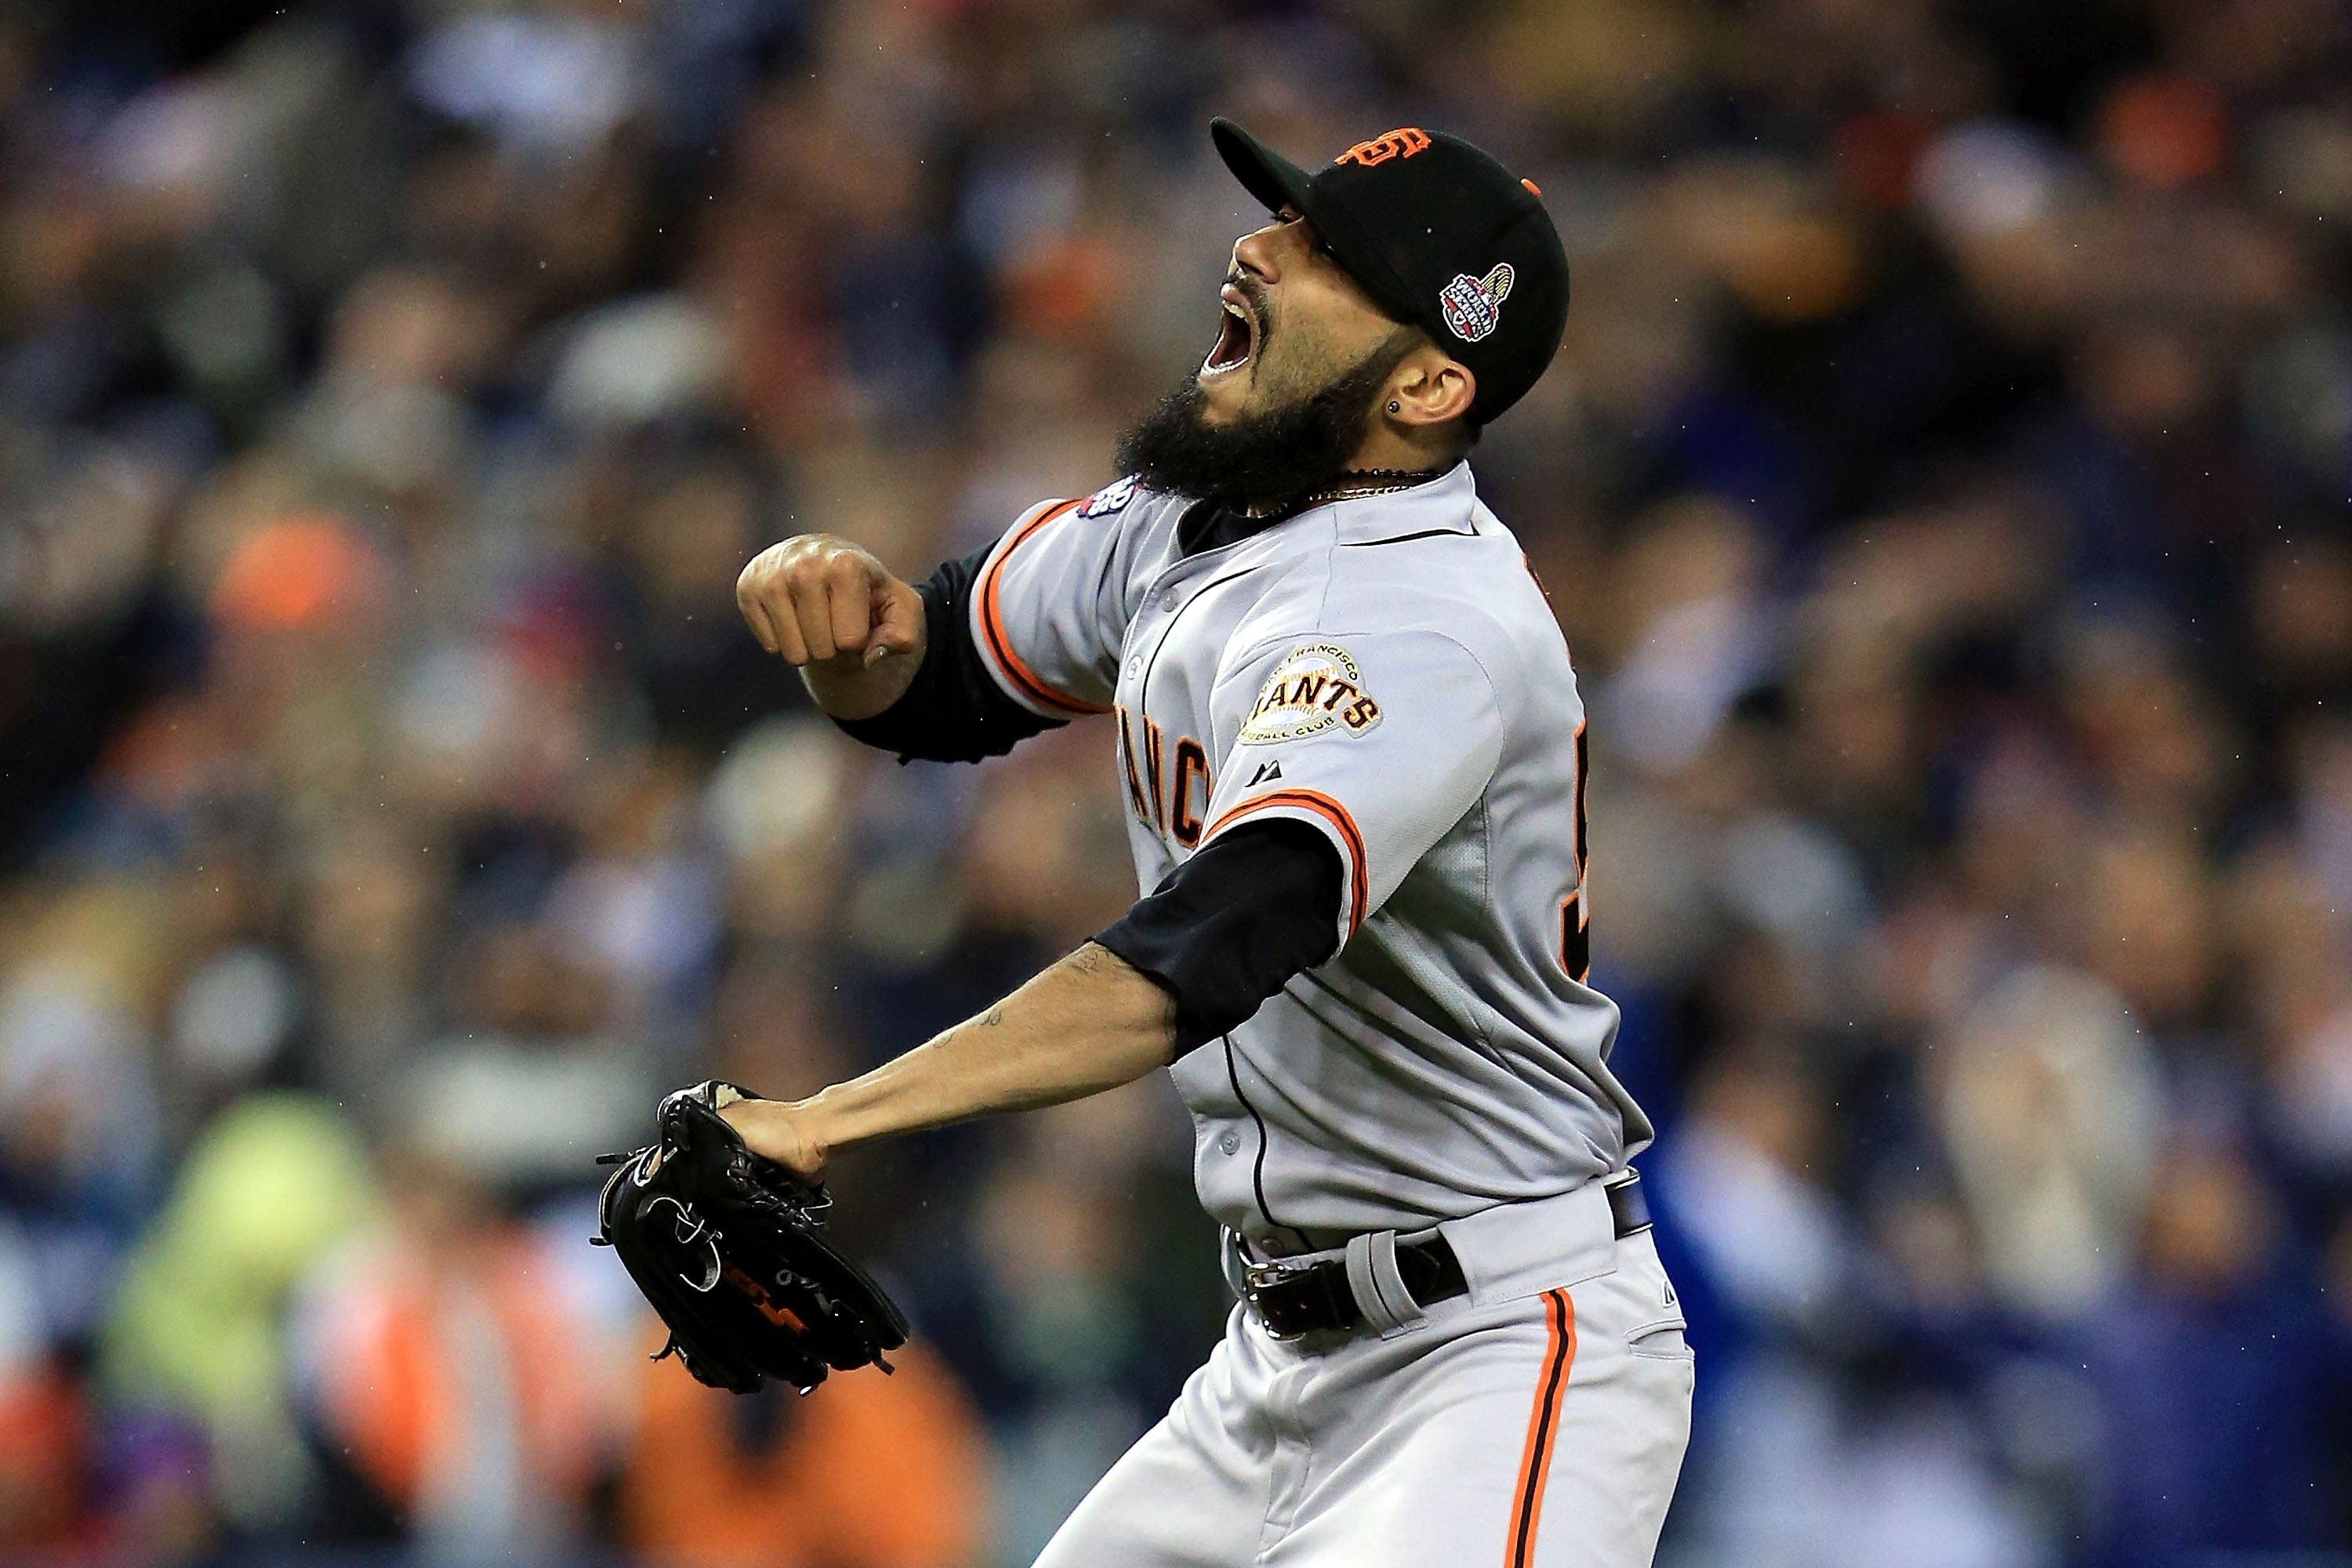 Sergio Romo reacts after striking out Miguel Cabrera in the 10th inning of Game 4. (Getty)